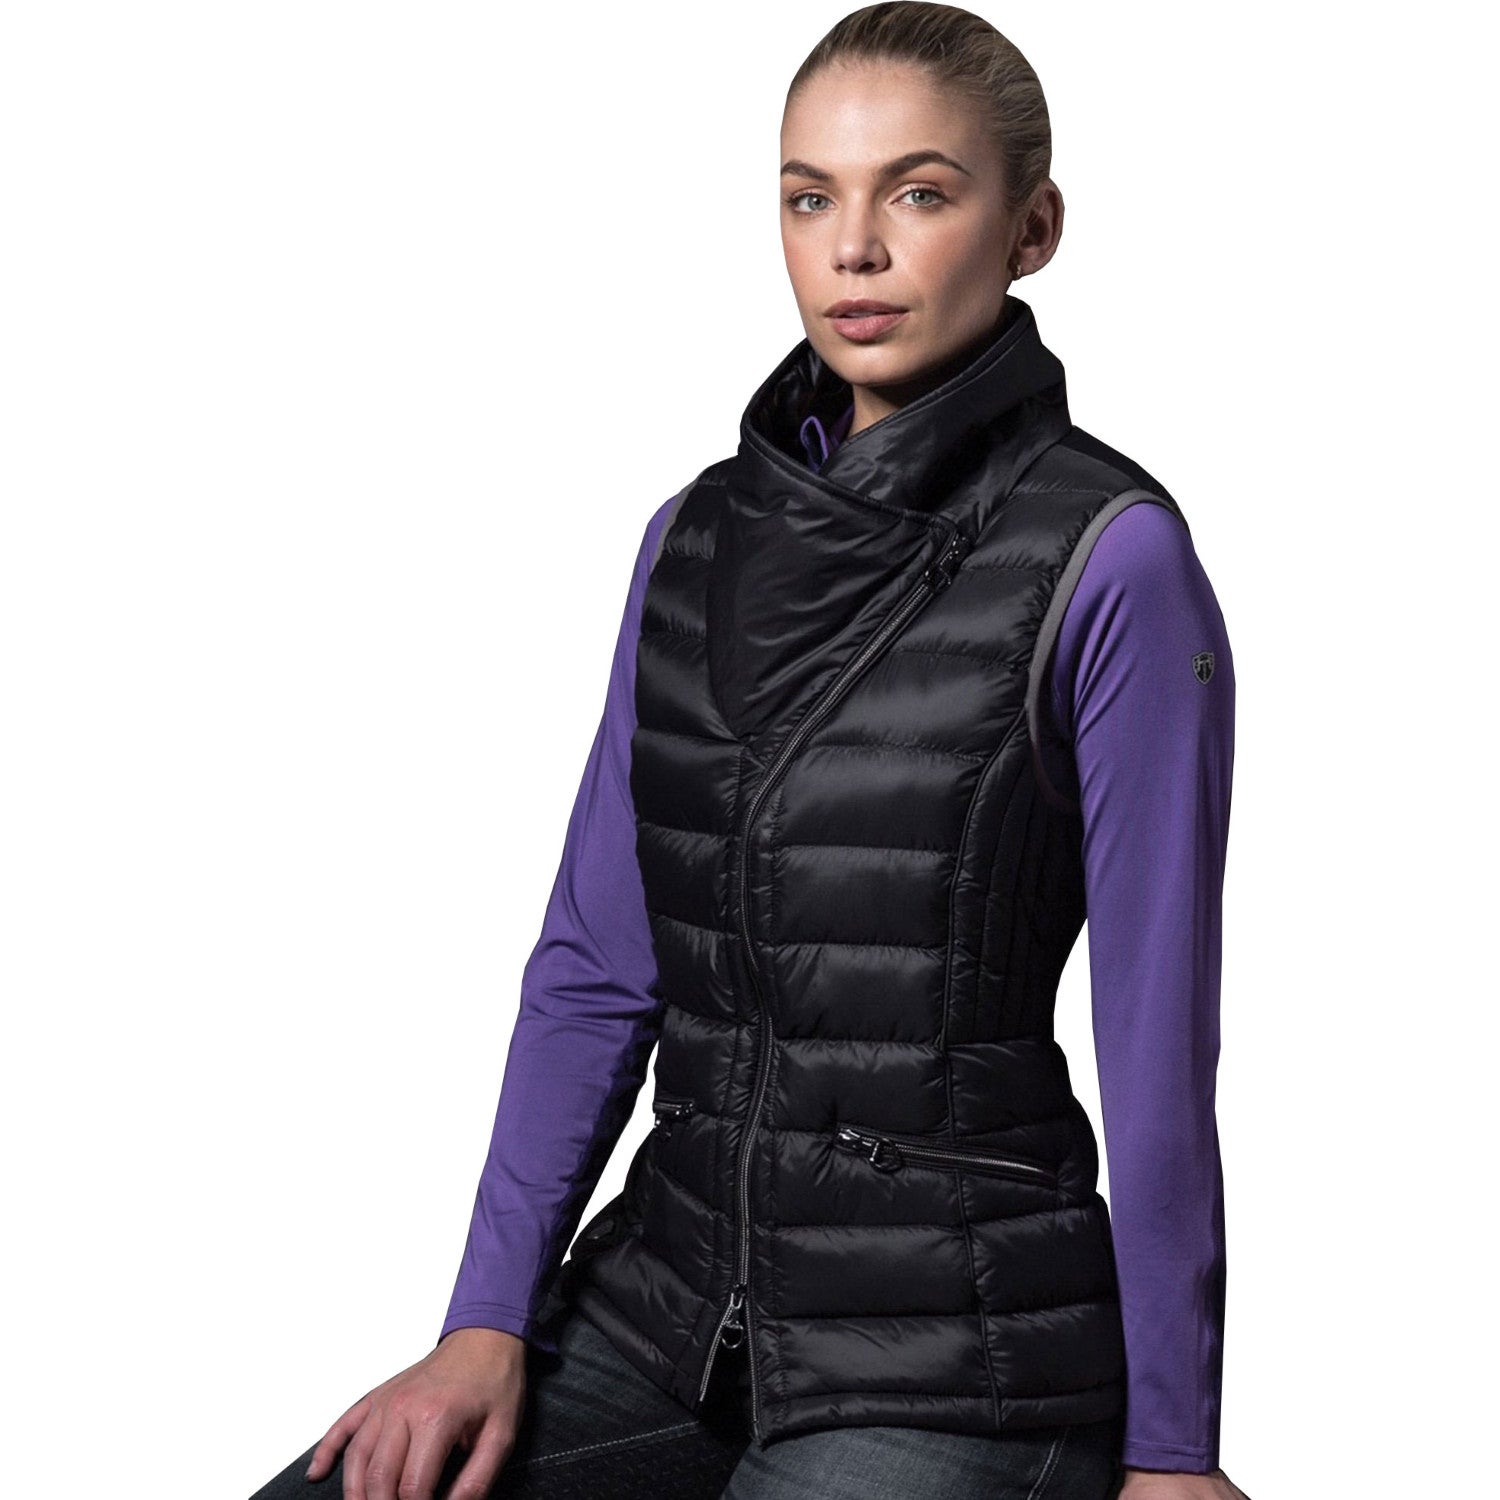 Equetech Chalgrove Micro Packable Ladies Gilet Available